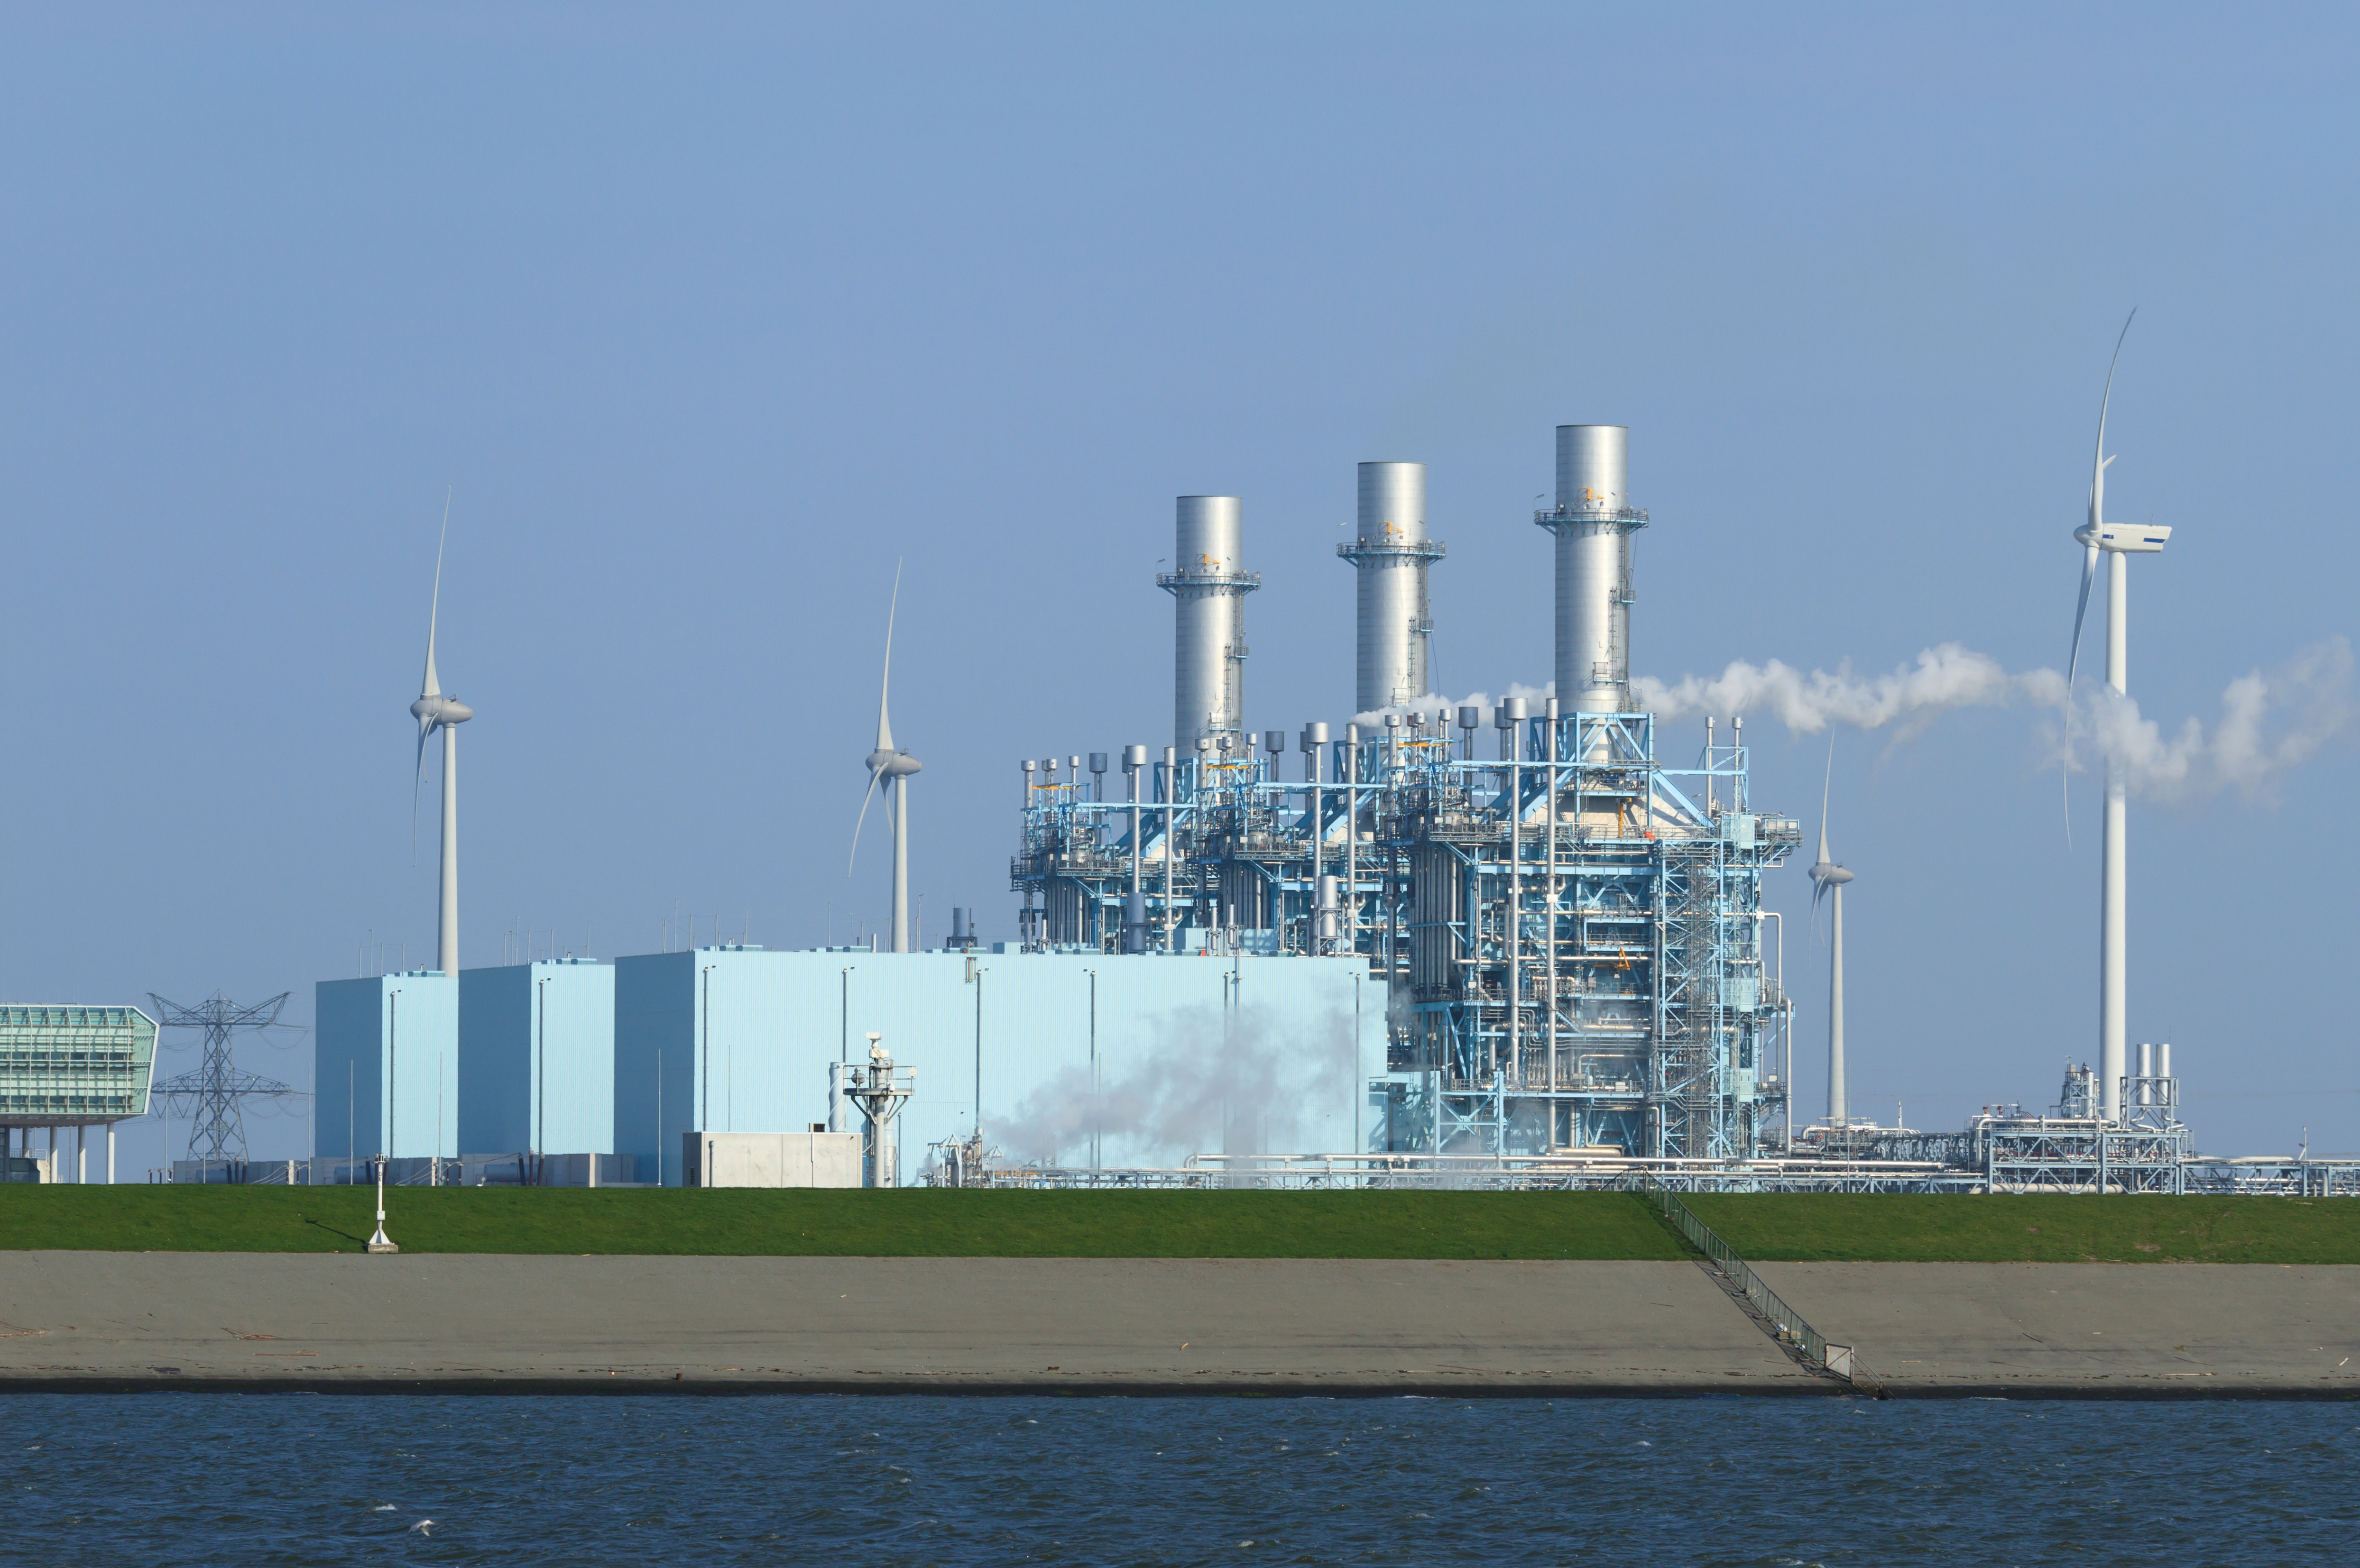 Photo of multi fuel power plant courtesy of DollarPhotoClub.com